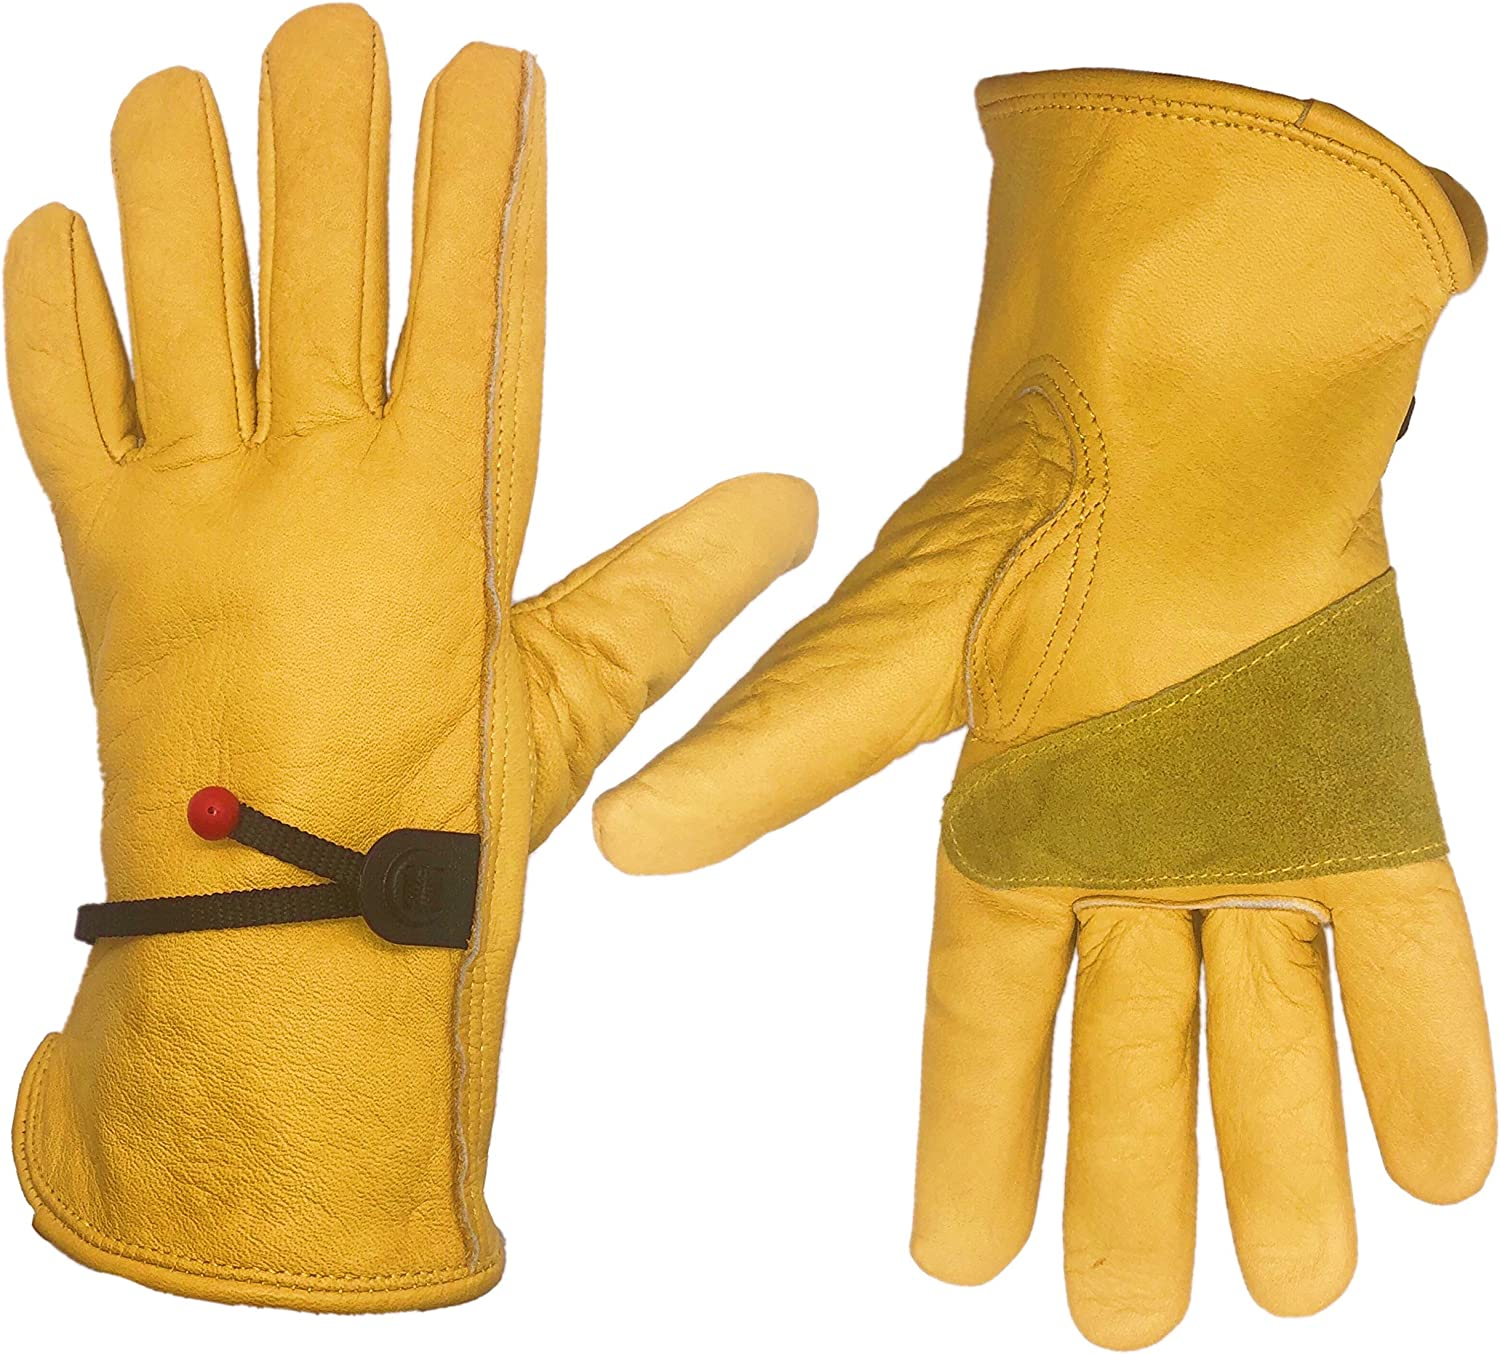 HomeGardenWish Cowhide At the Free shipping anywhere in the nation price Leather Work Heavy Duty Gloves Glove